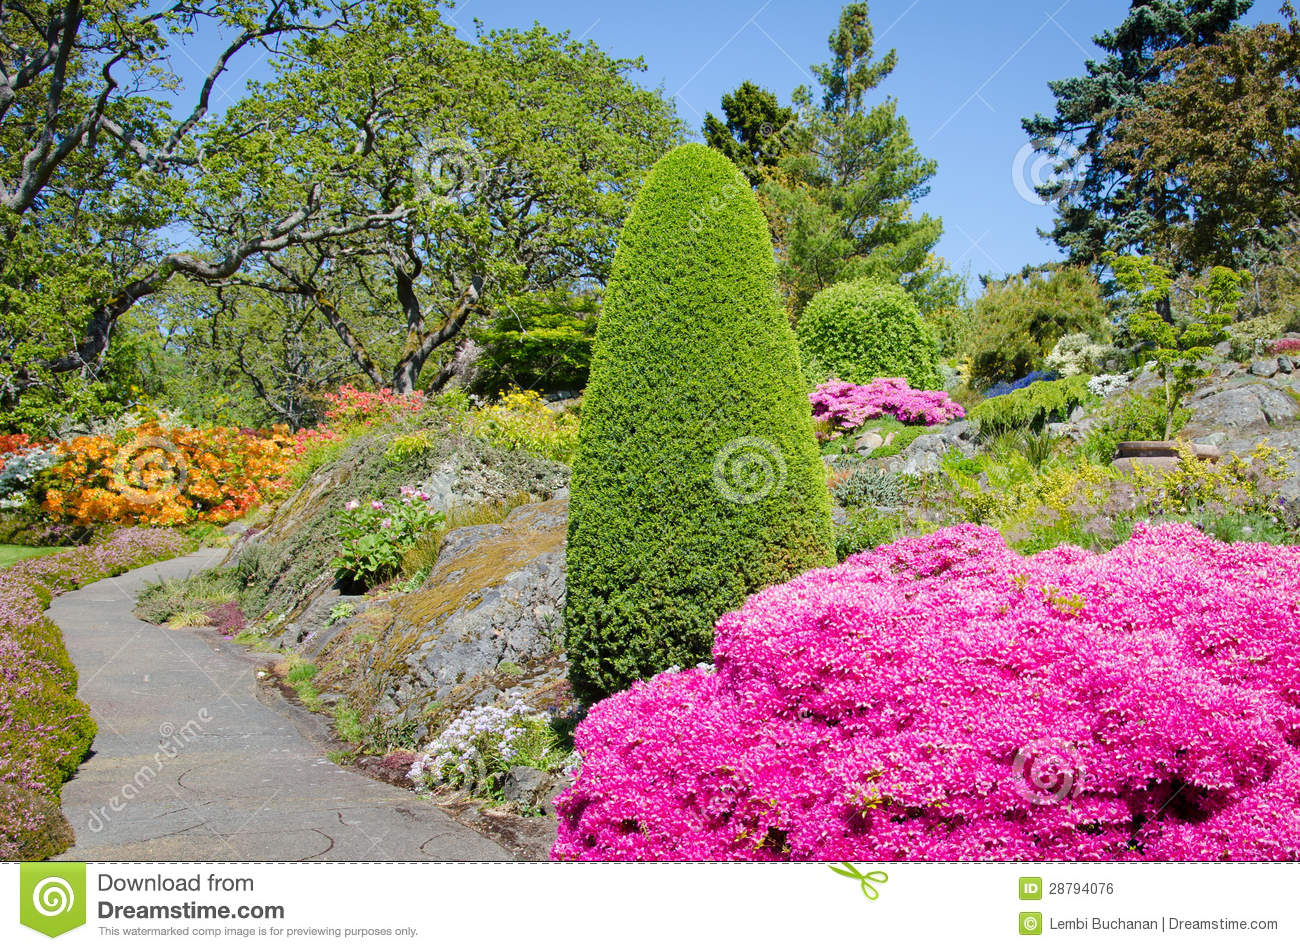 Beutiful beutiful garden in the spring royalty free stock image - image